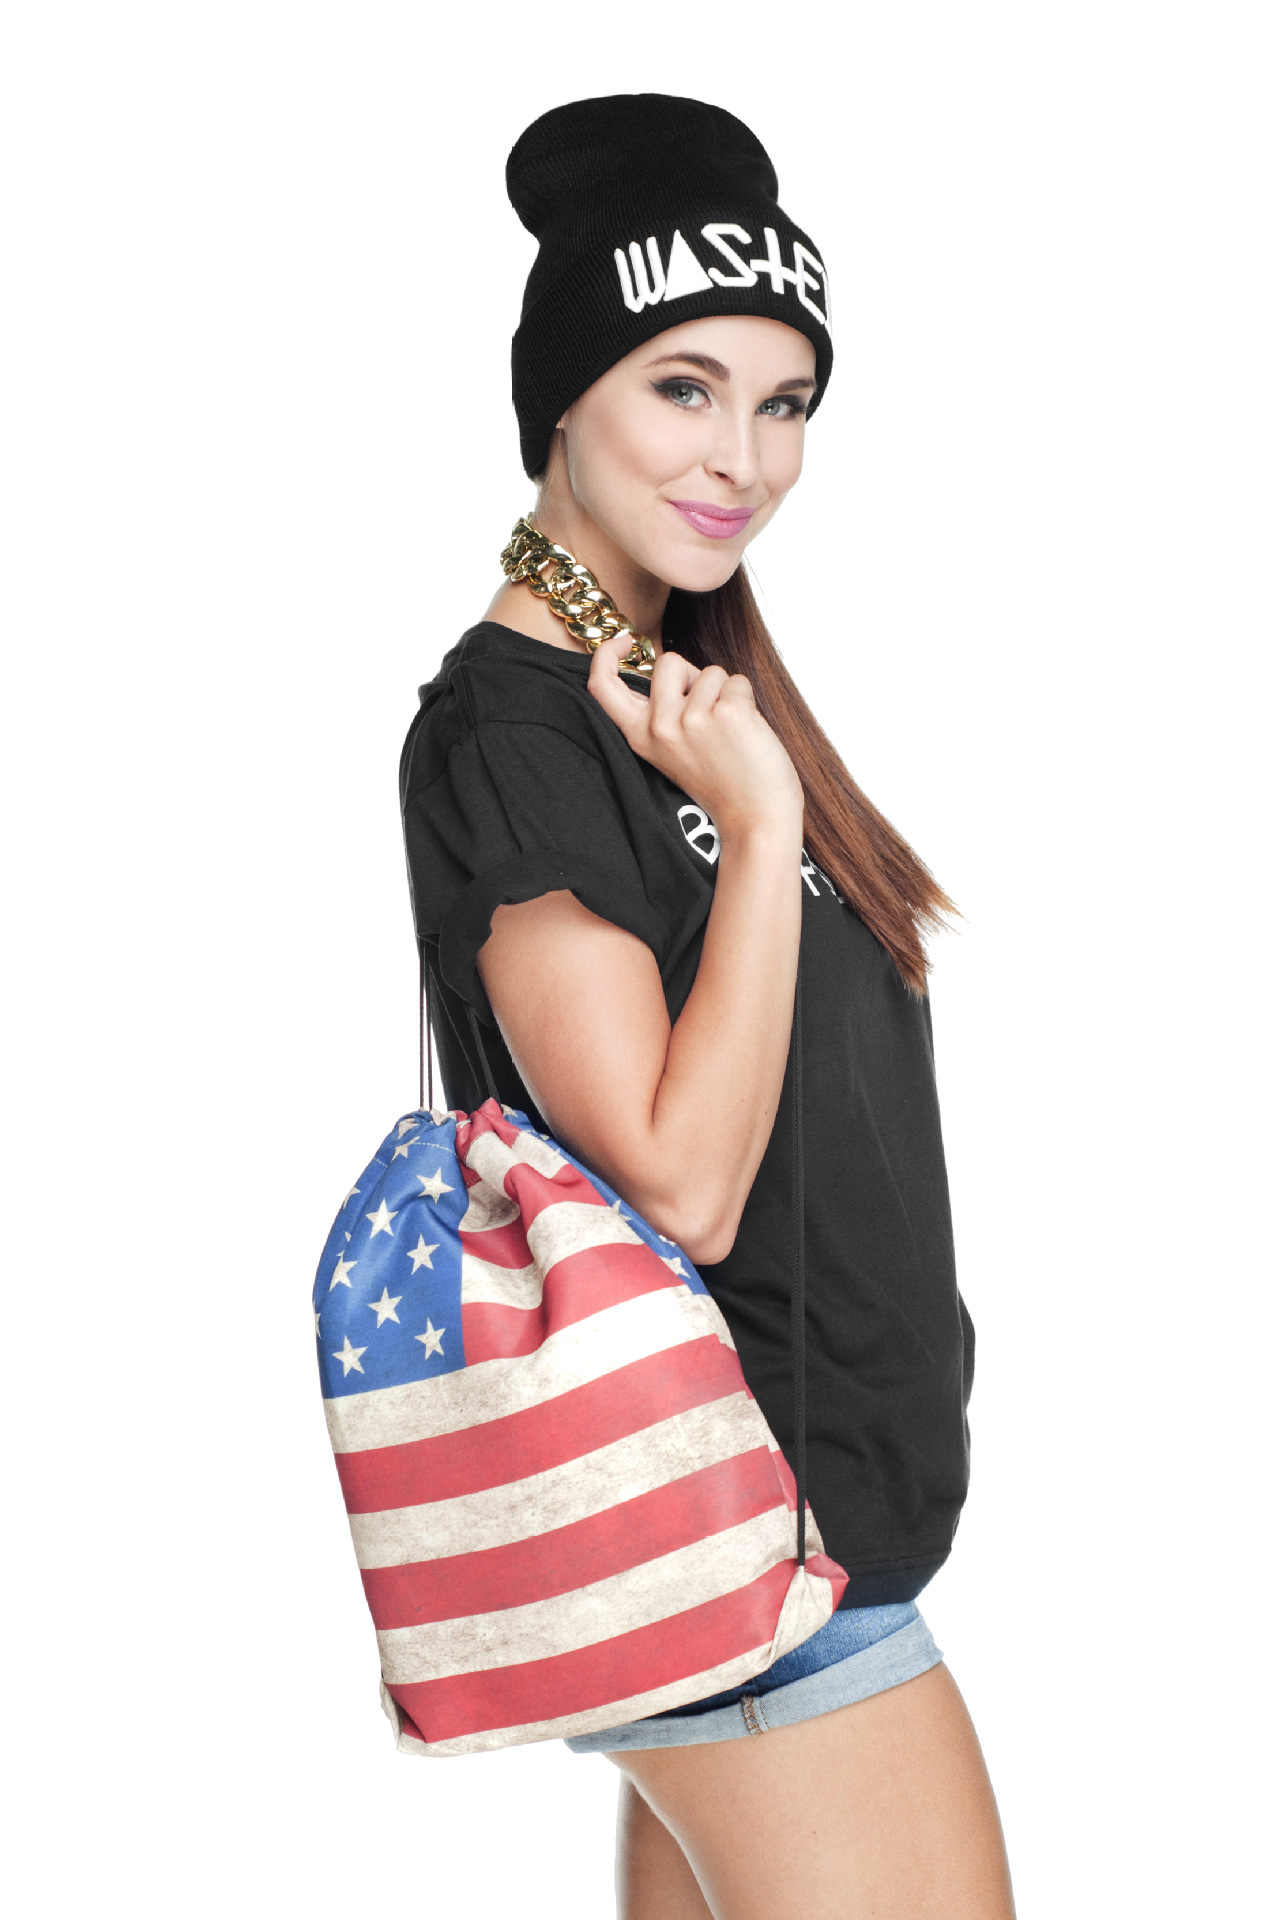 ... 3D Printed Female Student Schoolbags Vintage Drawstring Bags Hot Sale USA  American Flag Backpack 5da01f3c1